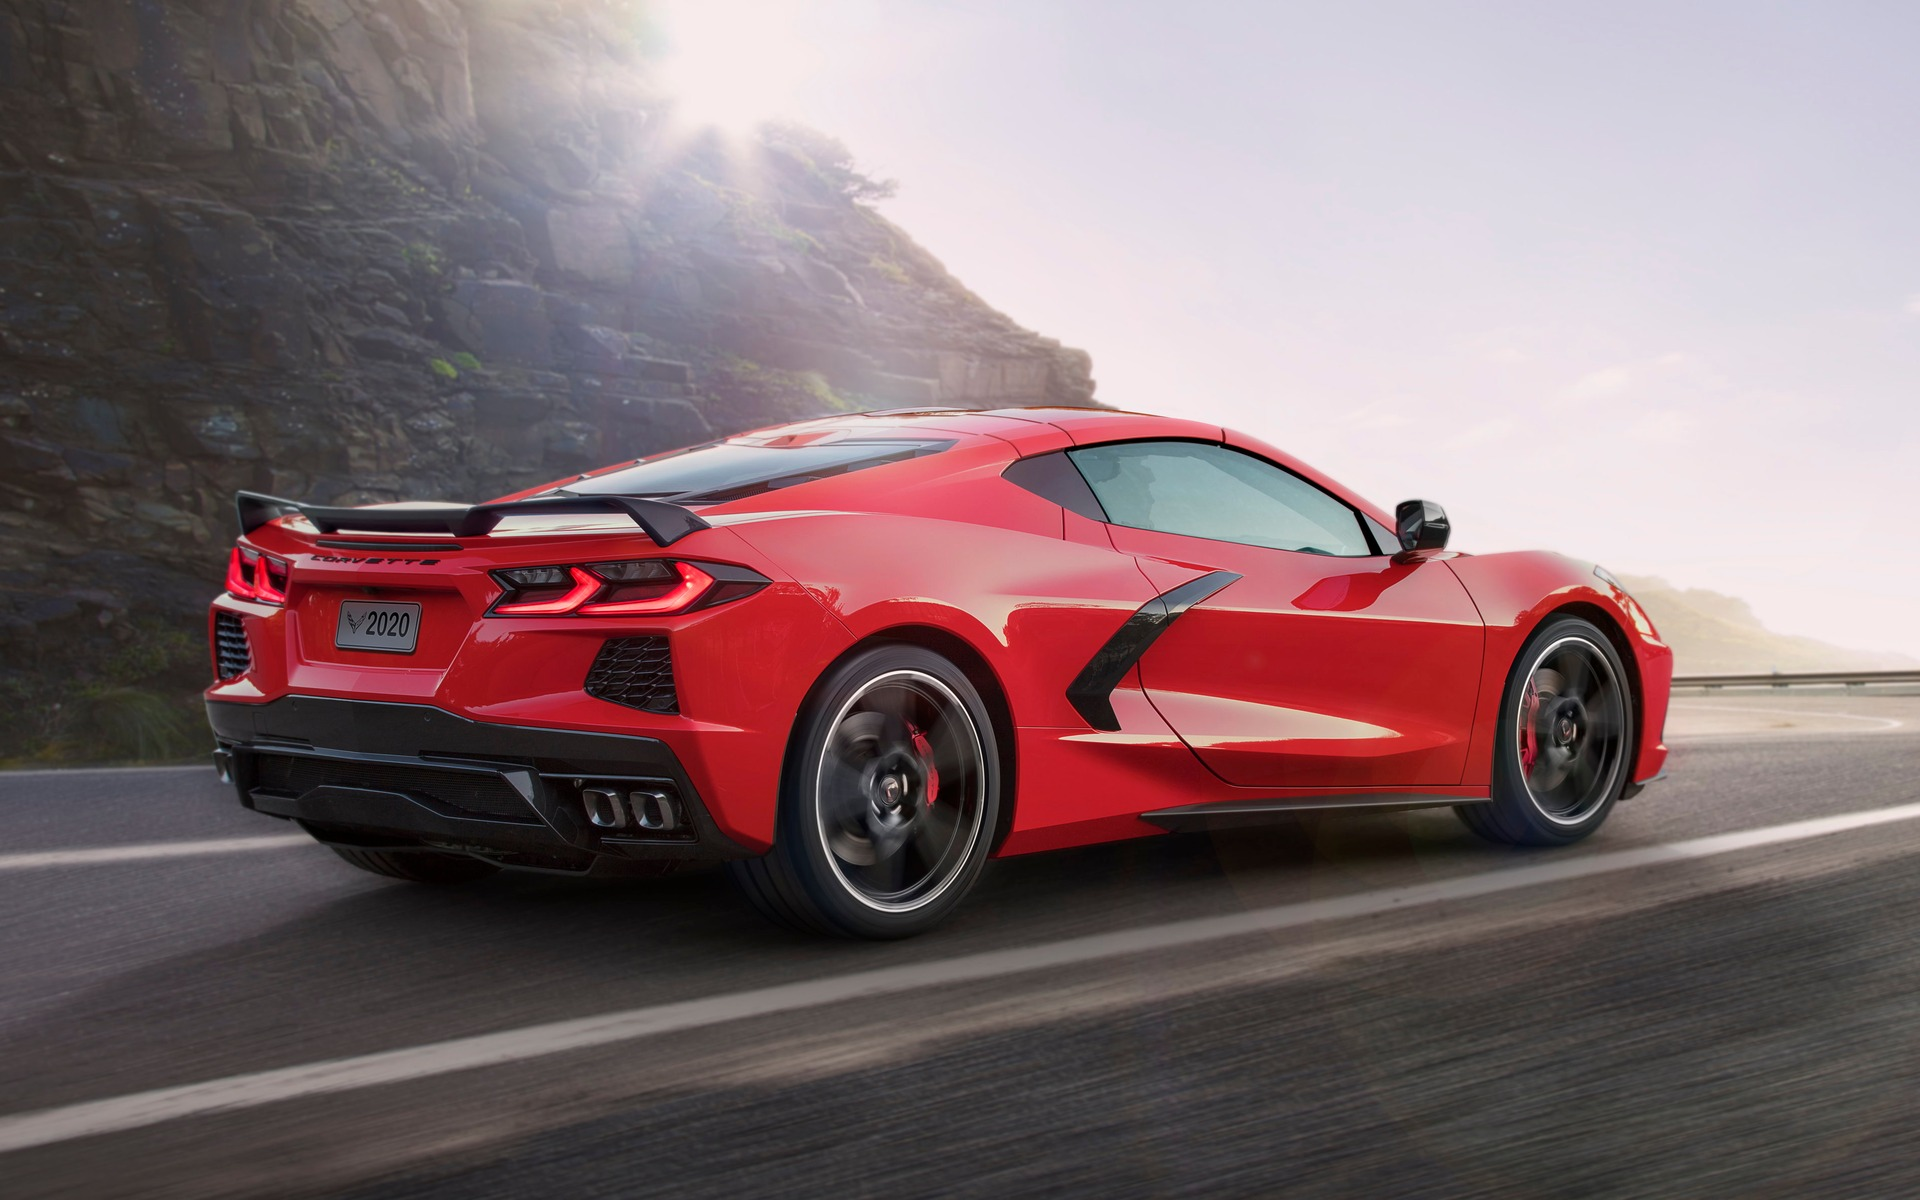 Chevrolet Corvette 2020 : Technical Specifications - The Car